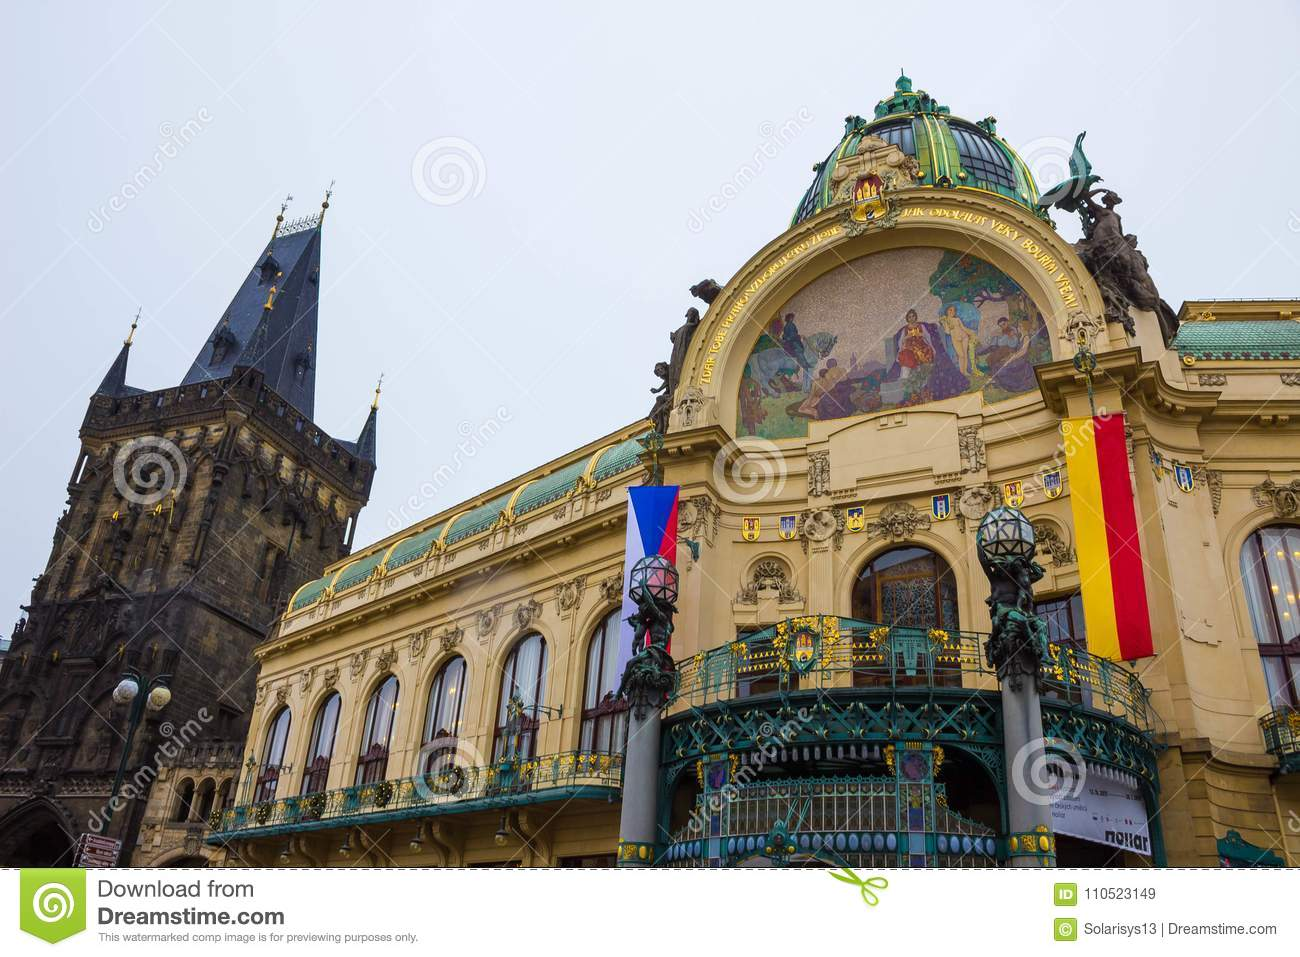 Prague, Czech Republic - December 31, 2017: The facade of old house and old architecture in old town